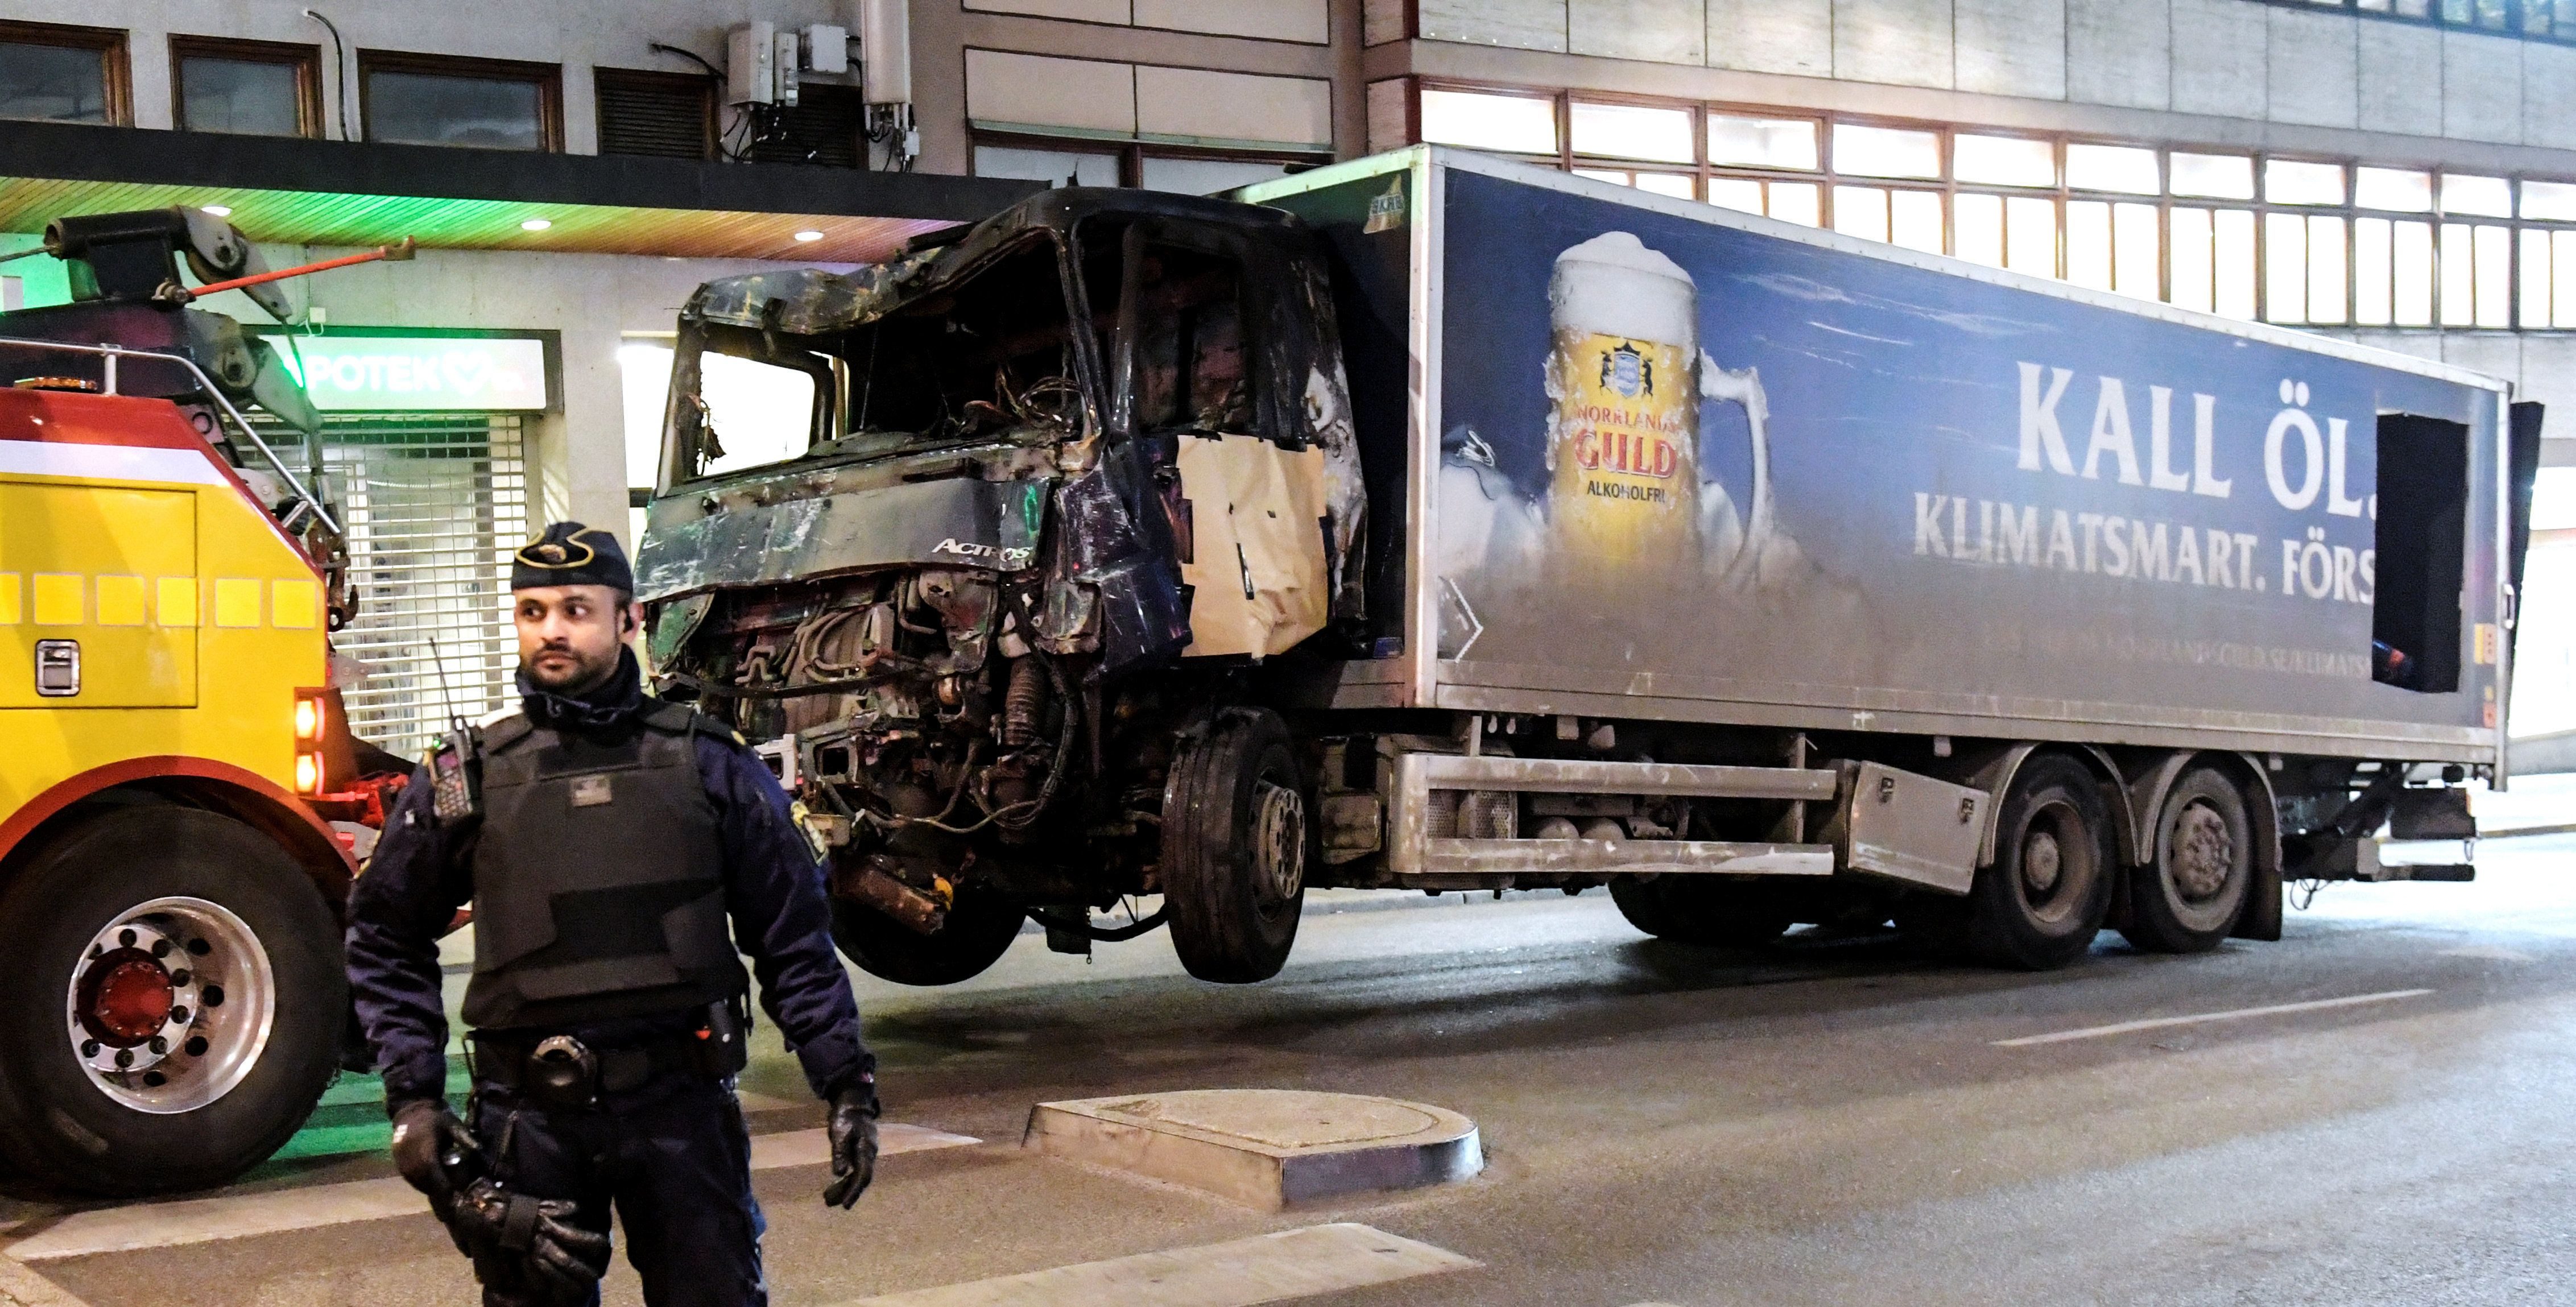 The truck used in Friday's attack in